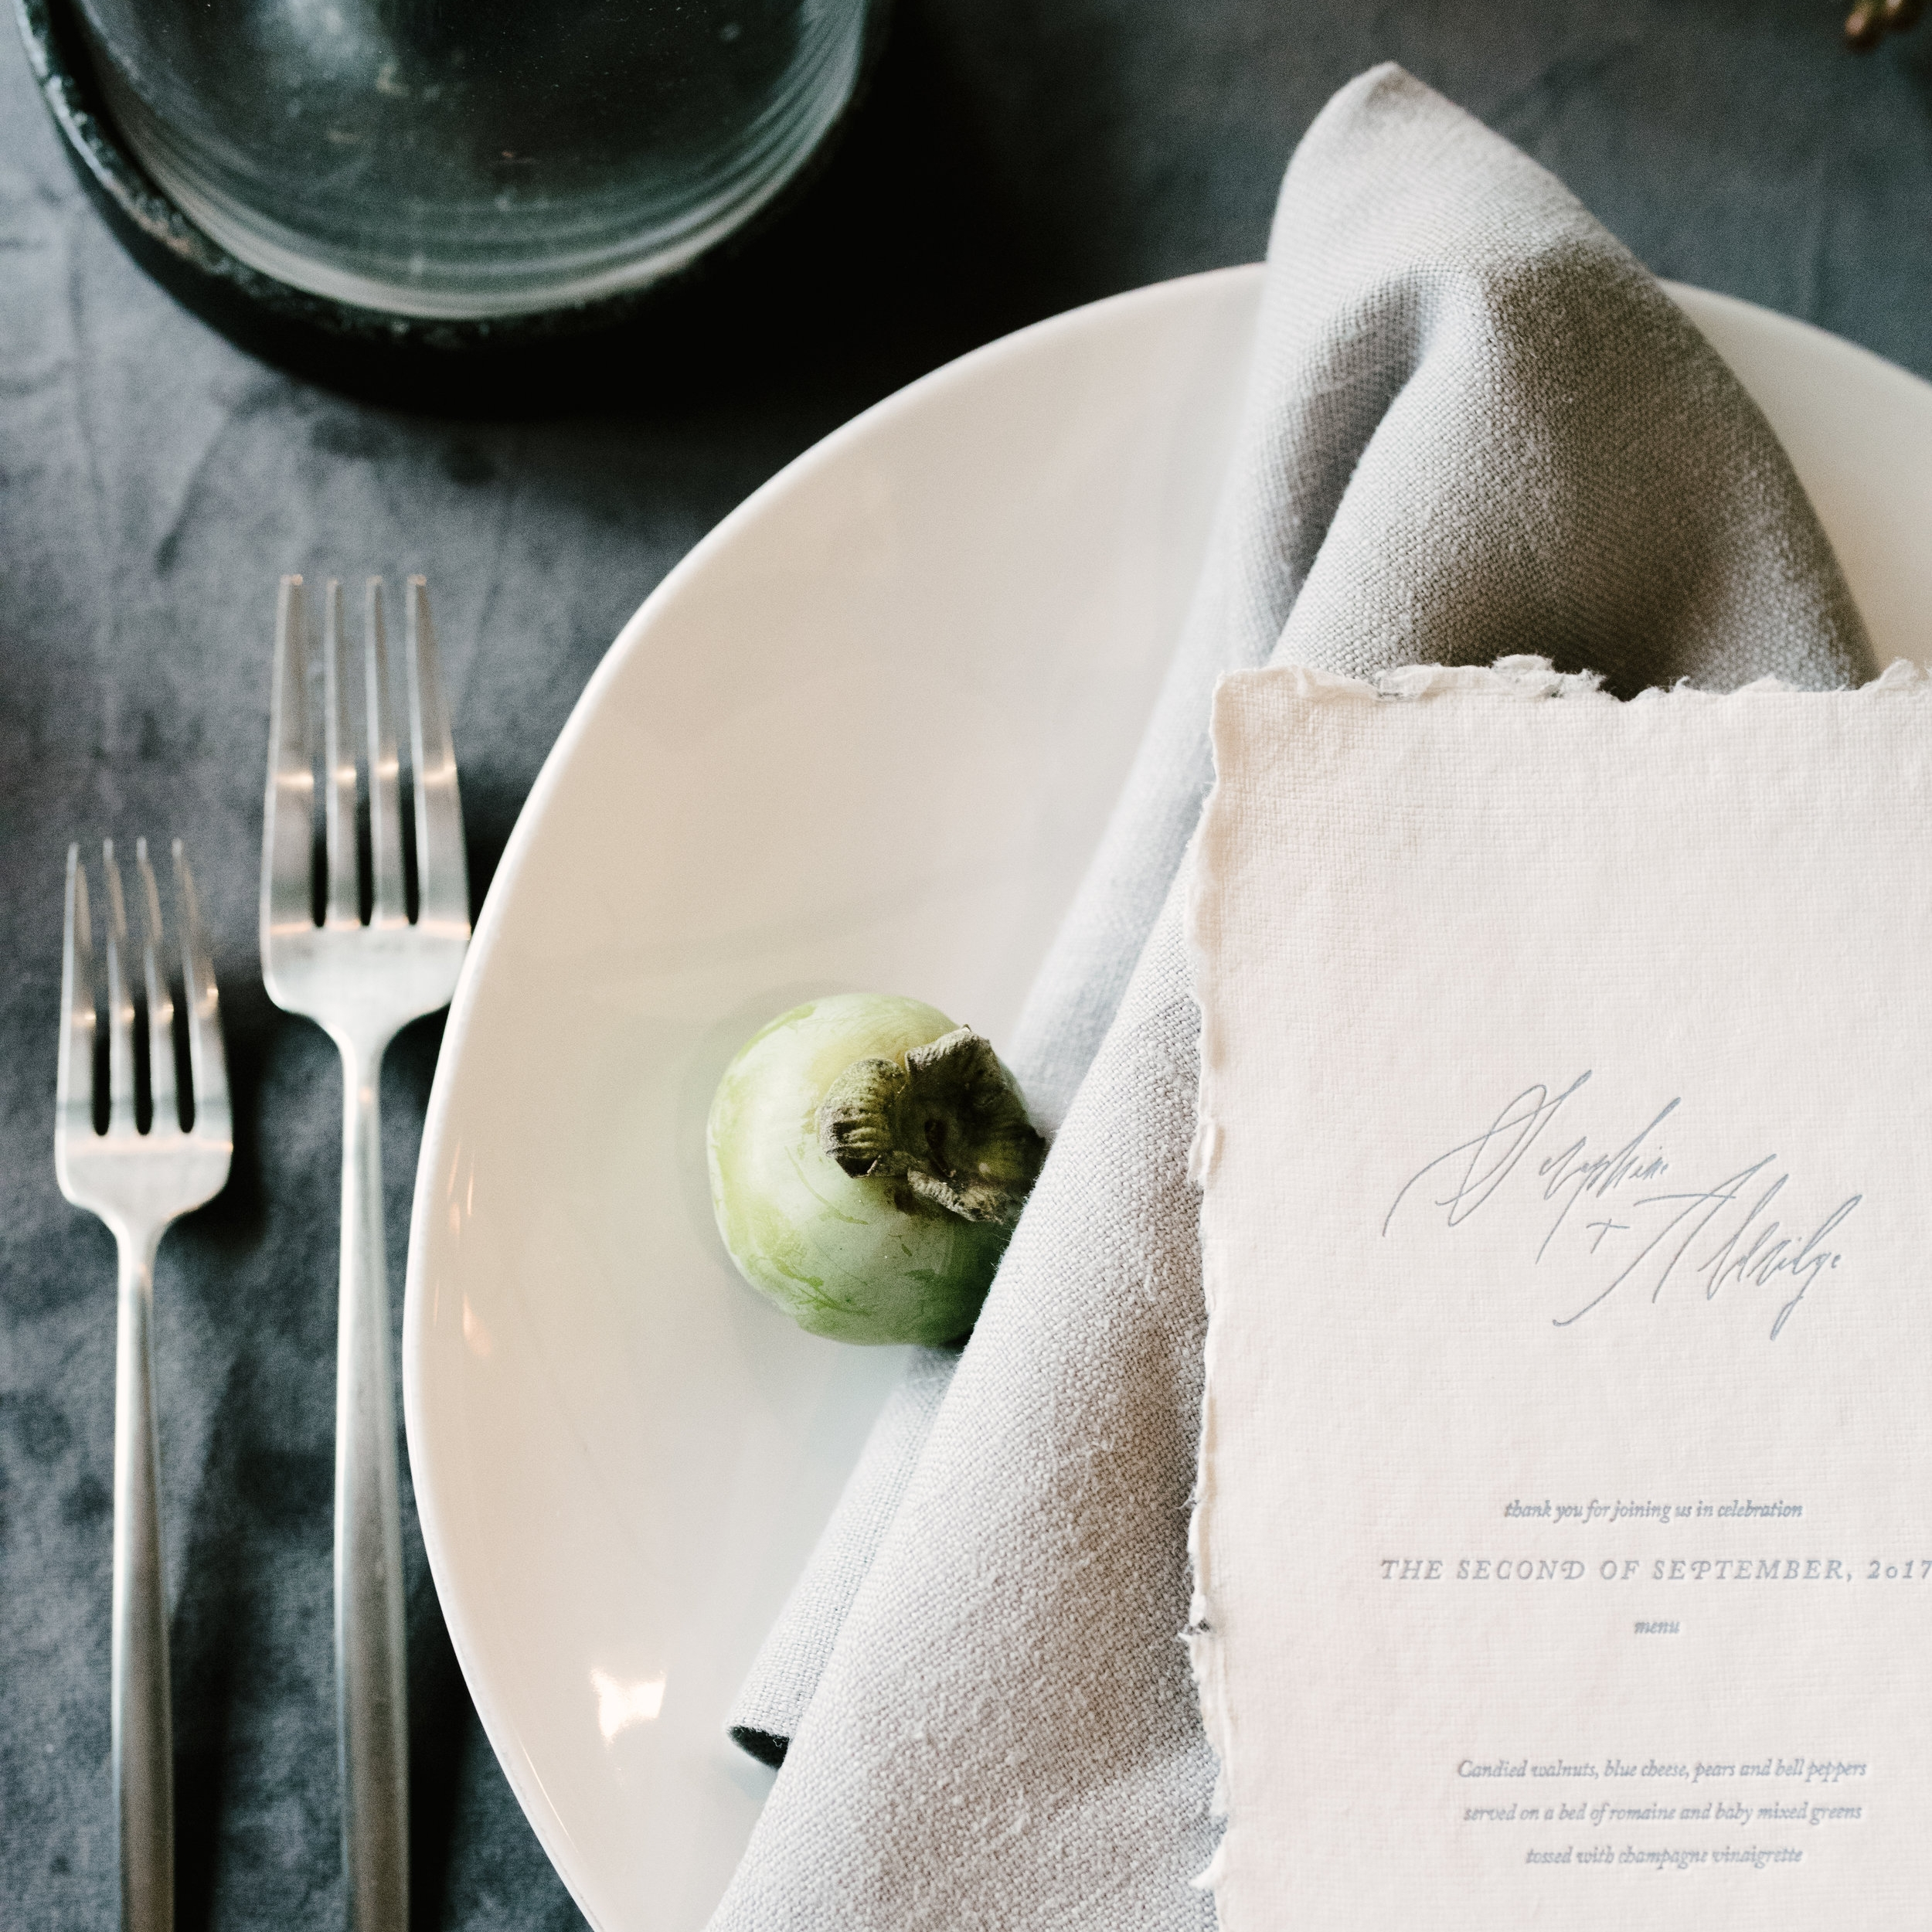 Design by Coston & Co., Photo by   Christy Wilson